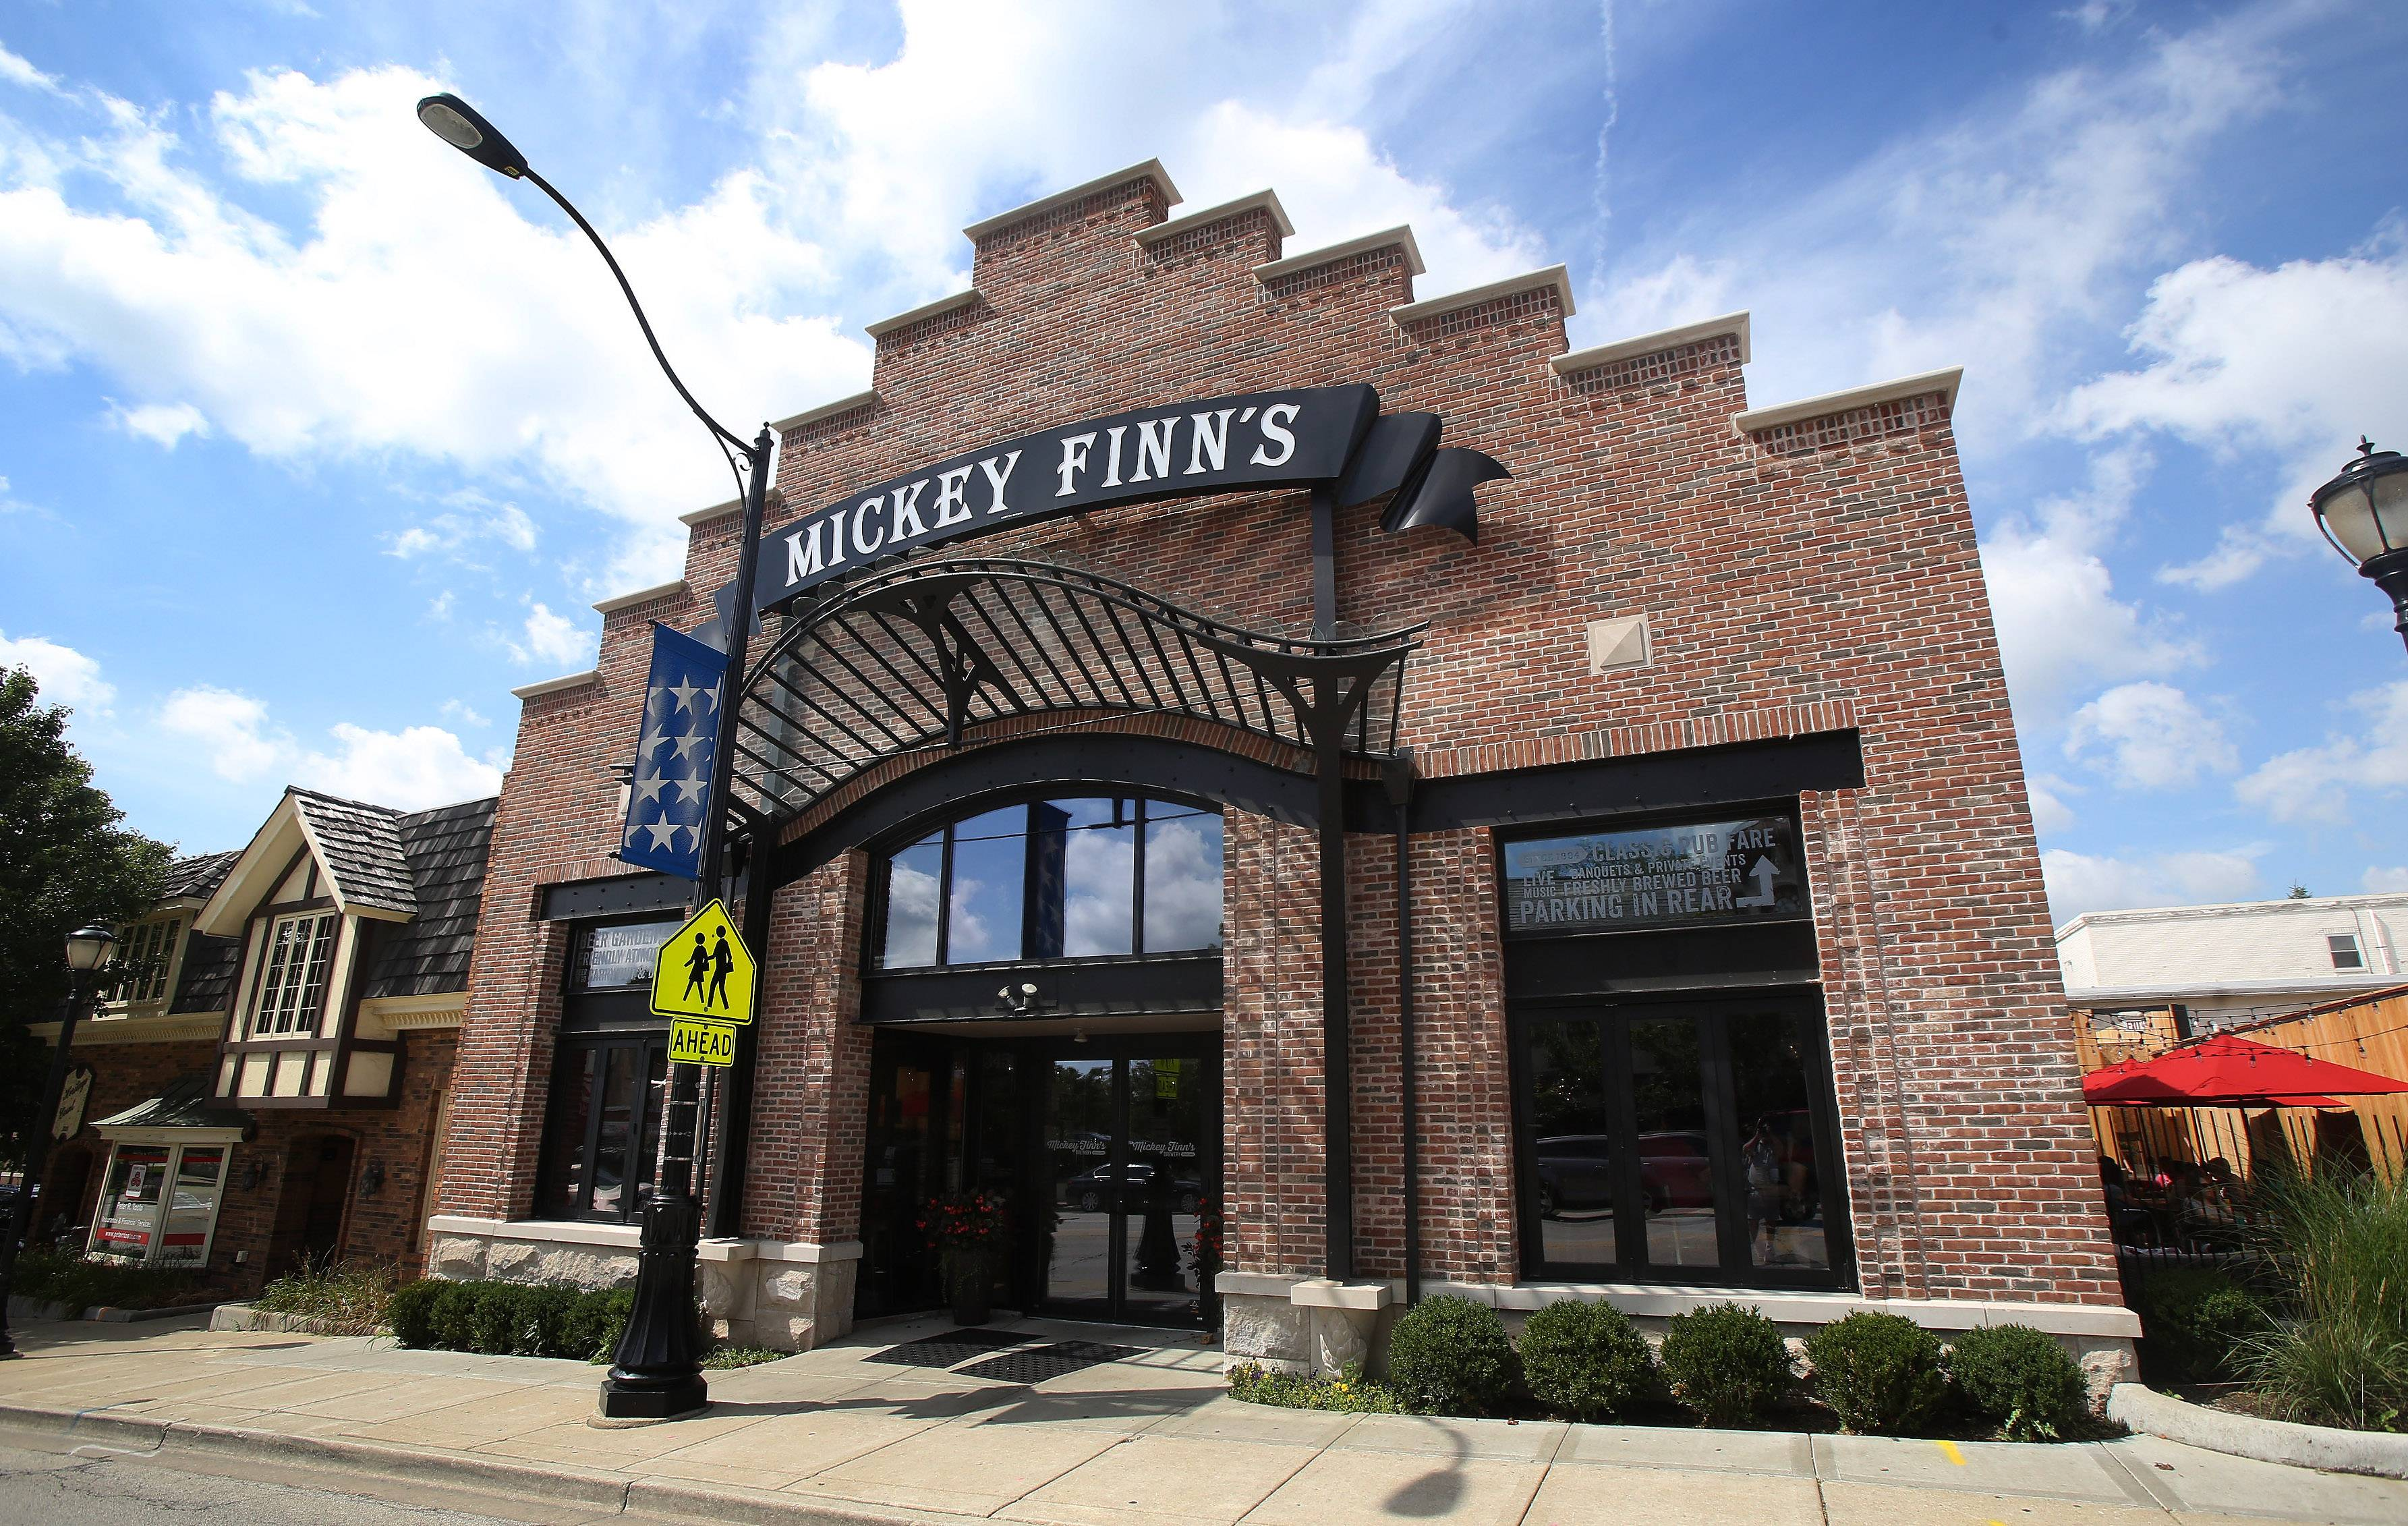 Mickey Finn's opened this summer at a new location in Libertyville.